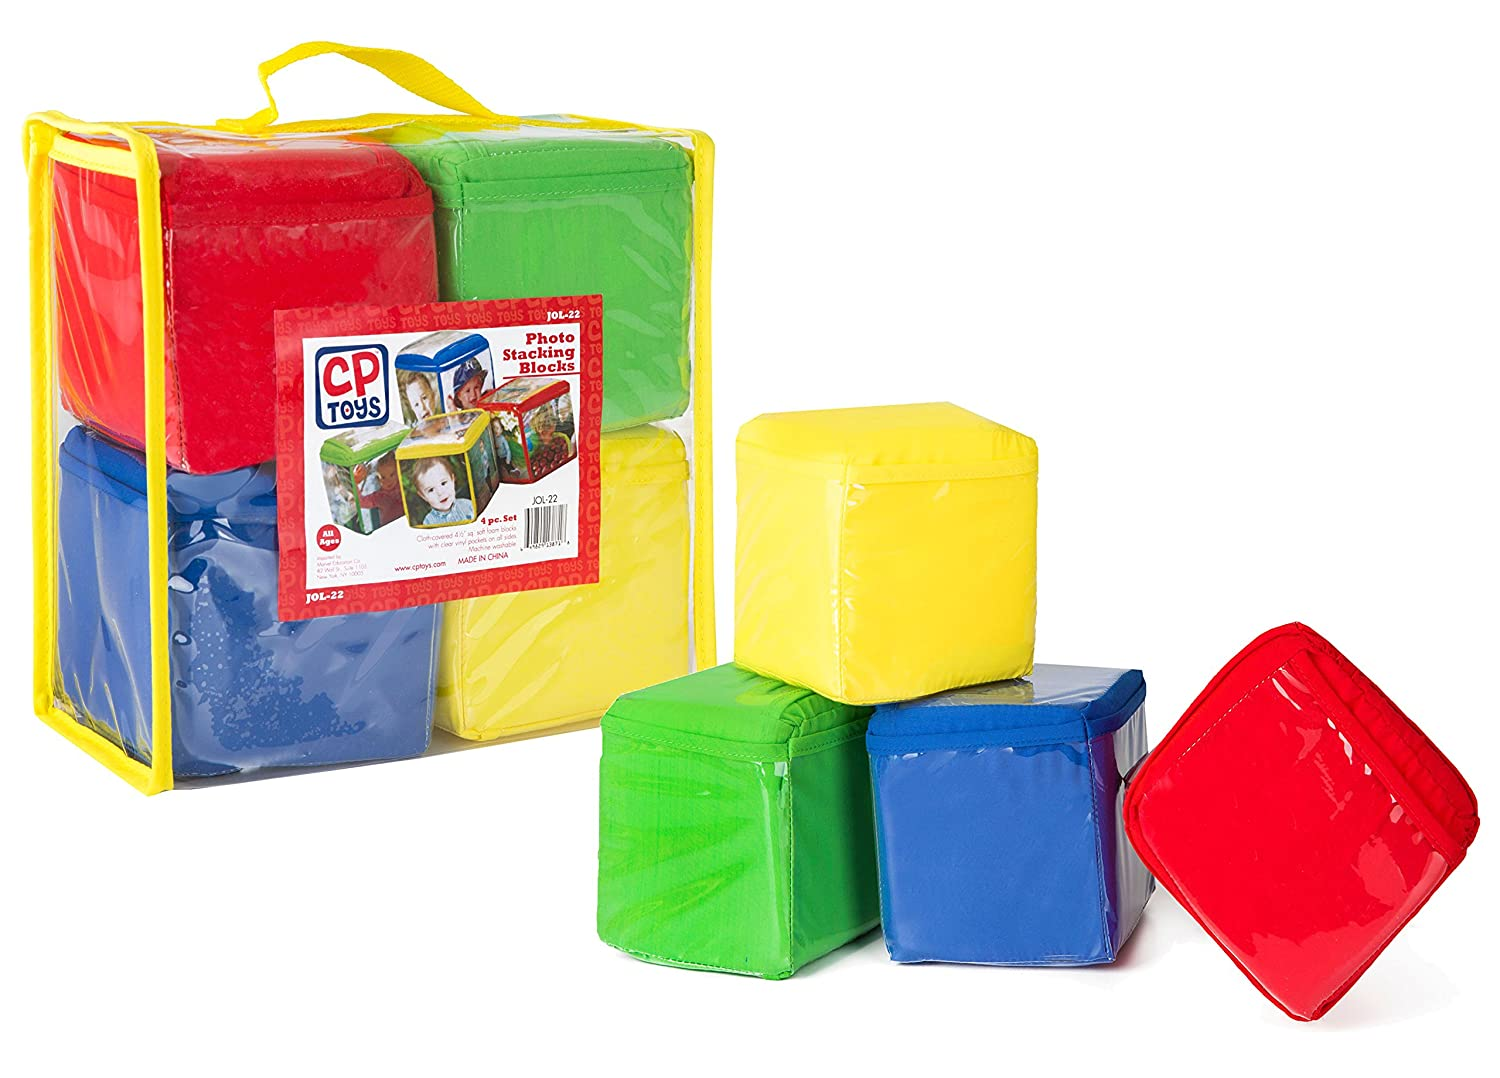 Photo Stacking Blocks